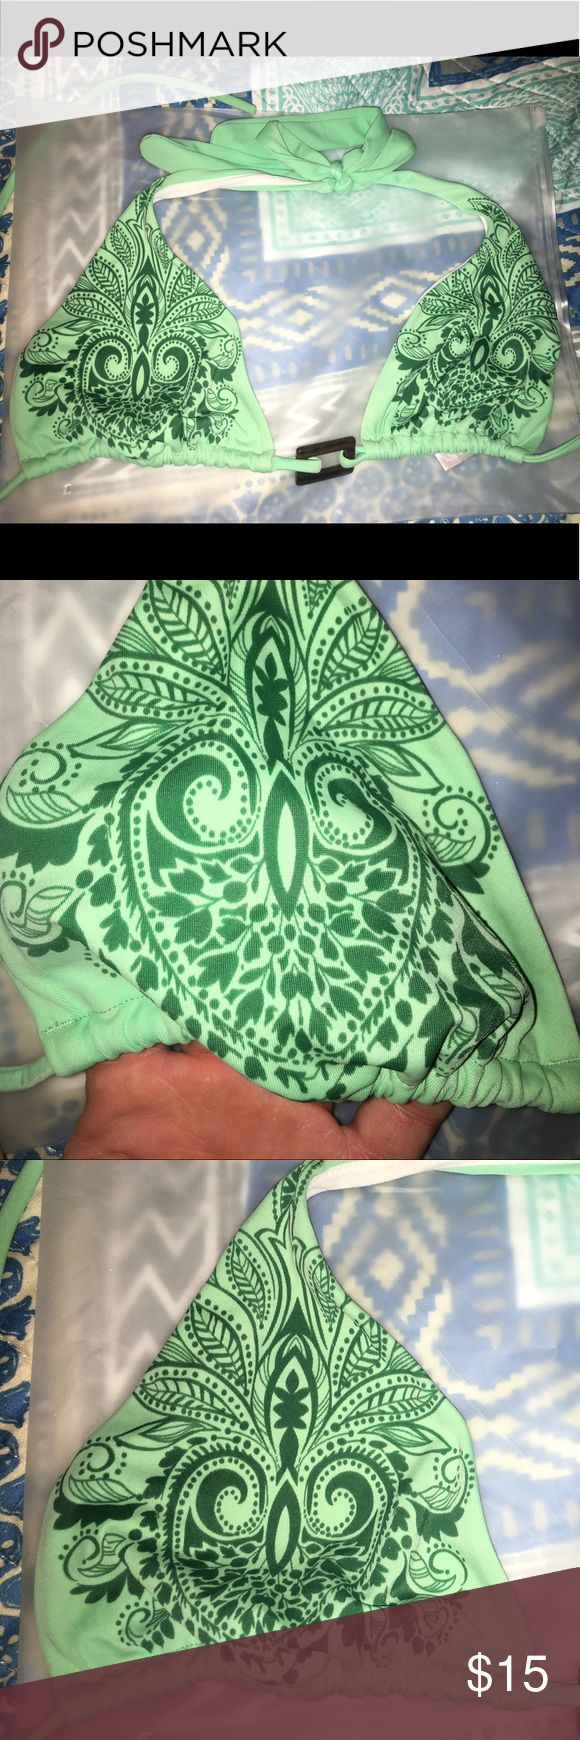 Victoria Secret triangle bikini top Green paisley design triangle bikini top - tie close - unlined and thin - front held together by brown plastic mock wood square bead- gently used Victoria's Secret Swim Bikinis